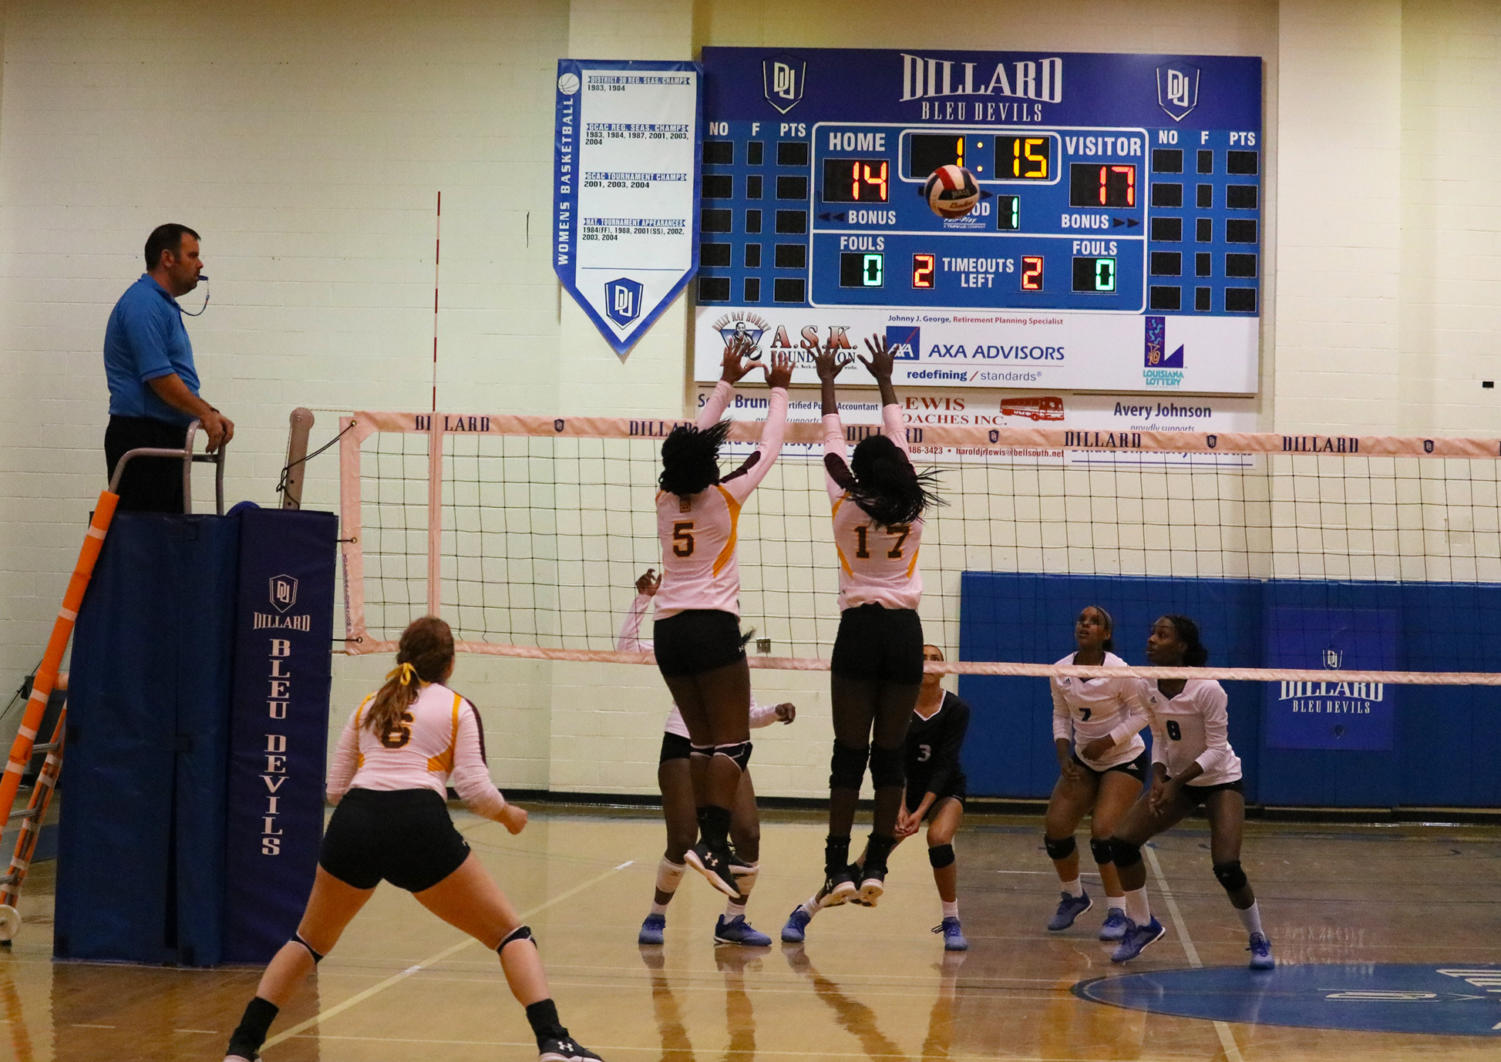 General studies freshman Jordan Bernard (5) and biology junior Champagne Cunningham (17) block the ball in the first set against Dillard University. Bernard tallied 17 total kills against Dillard University. Photo credit: Sidney Ovrom